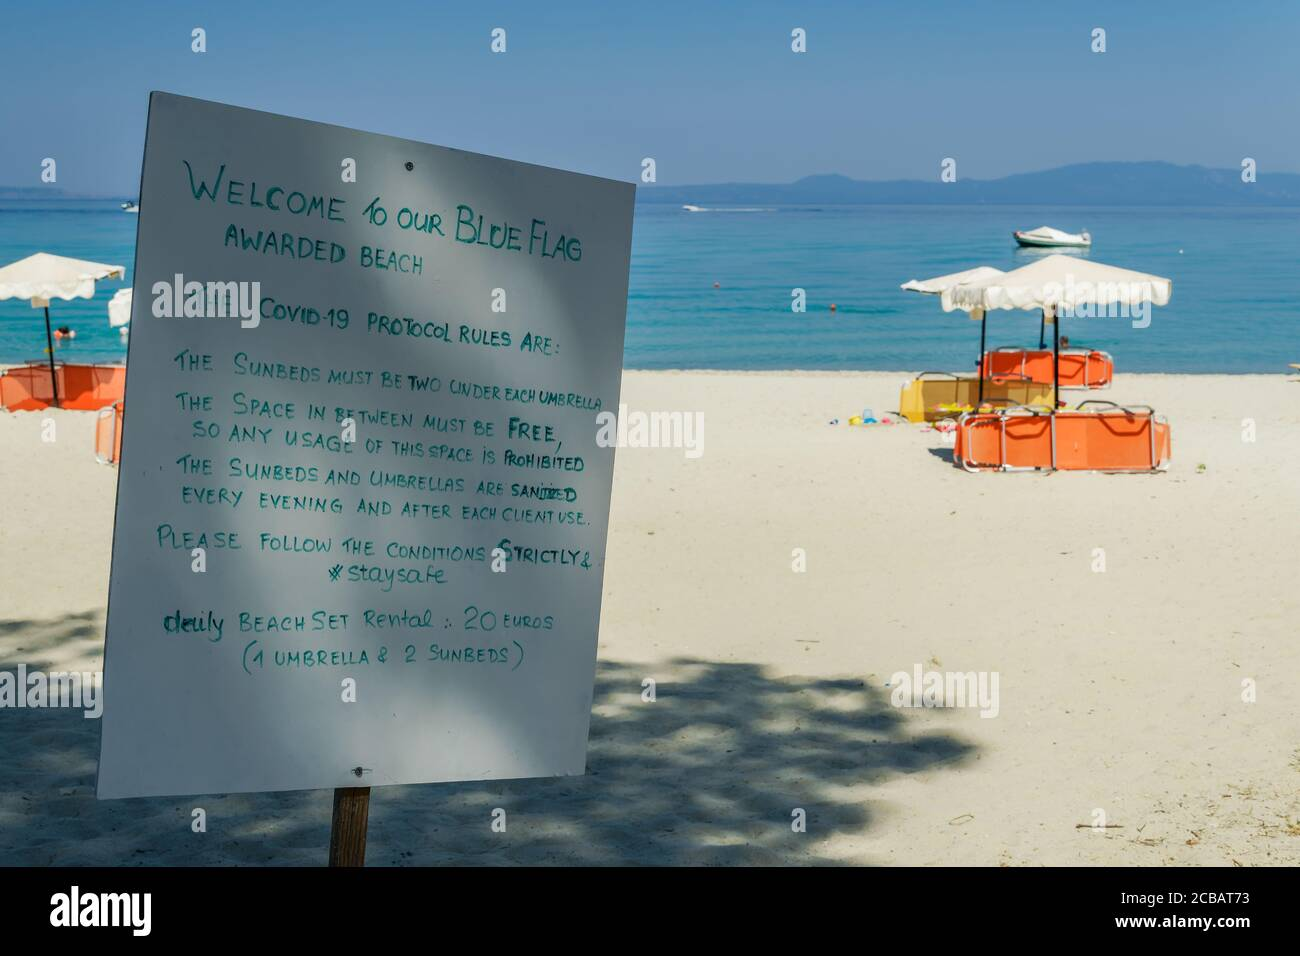 Chalkidiki, Greece Covid-19 beach precautions sign. Info at empty beach, describing protocol rules for sunbeds and umbrellas, to protect from virus. Stock Photo